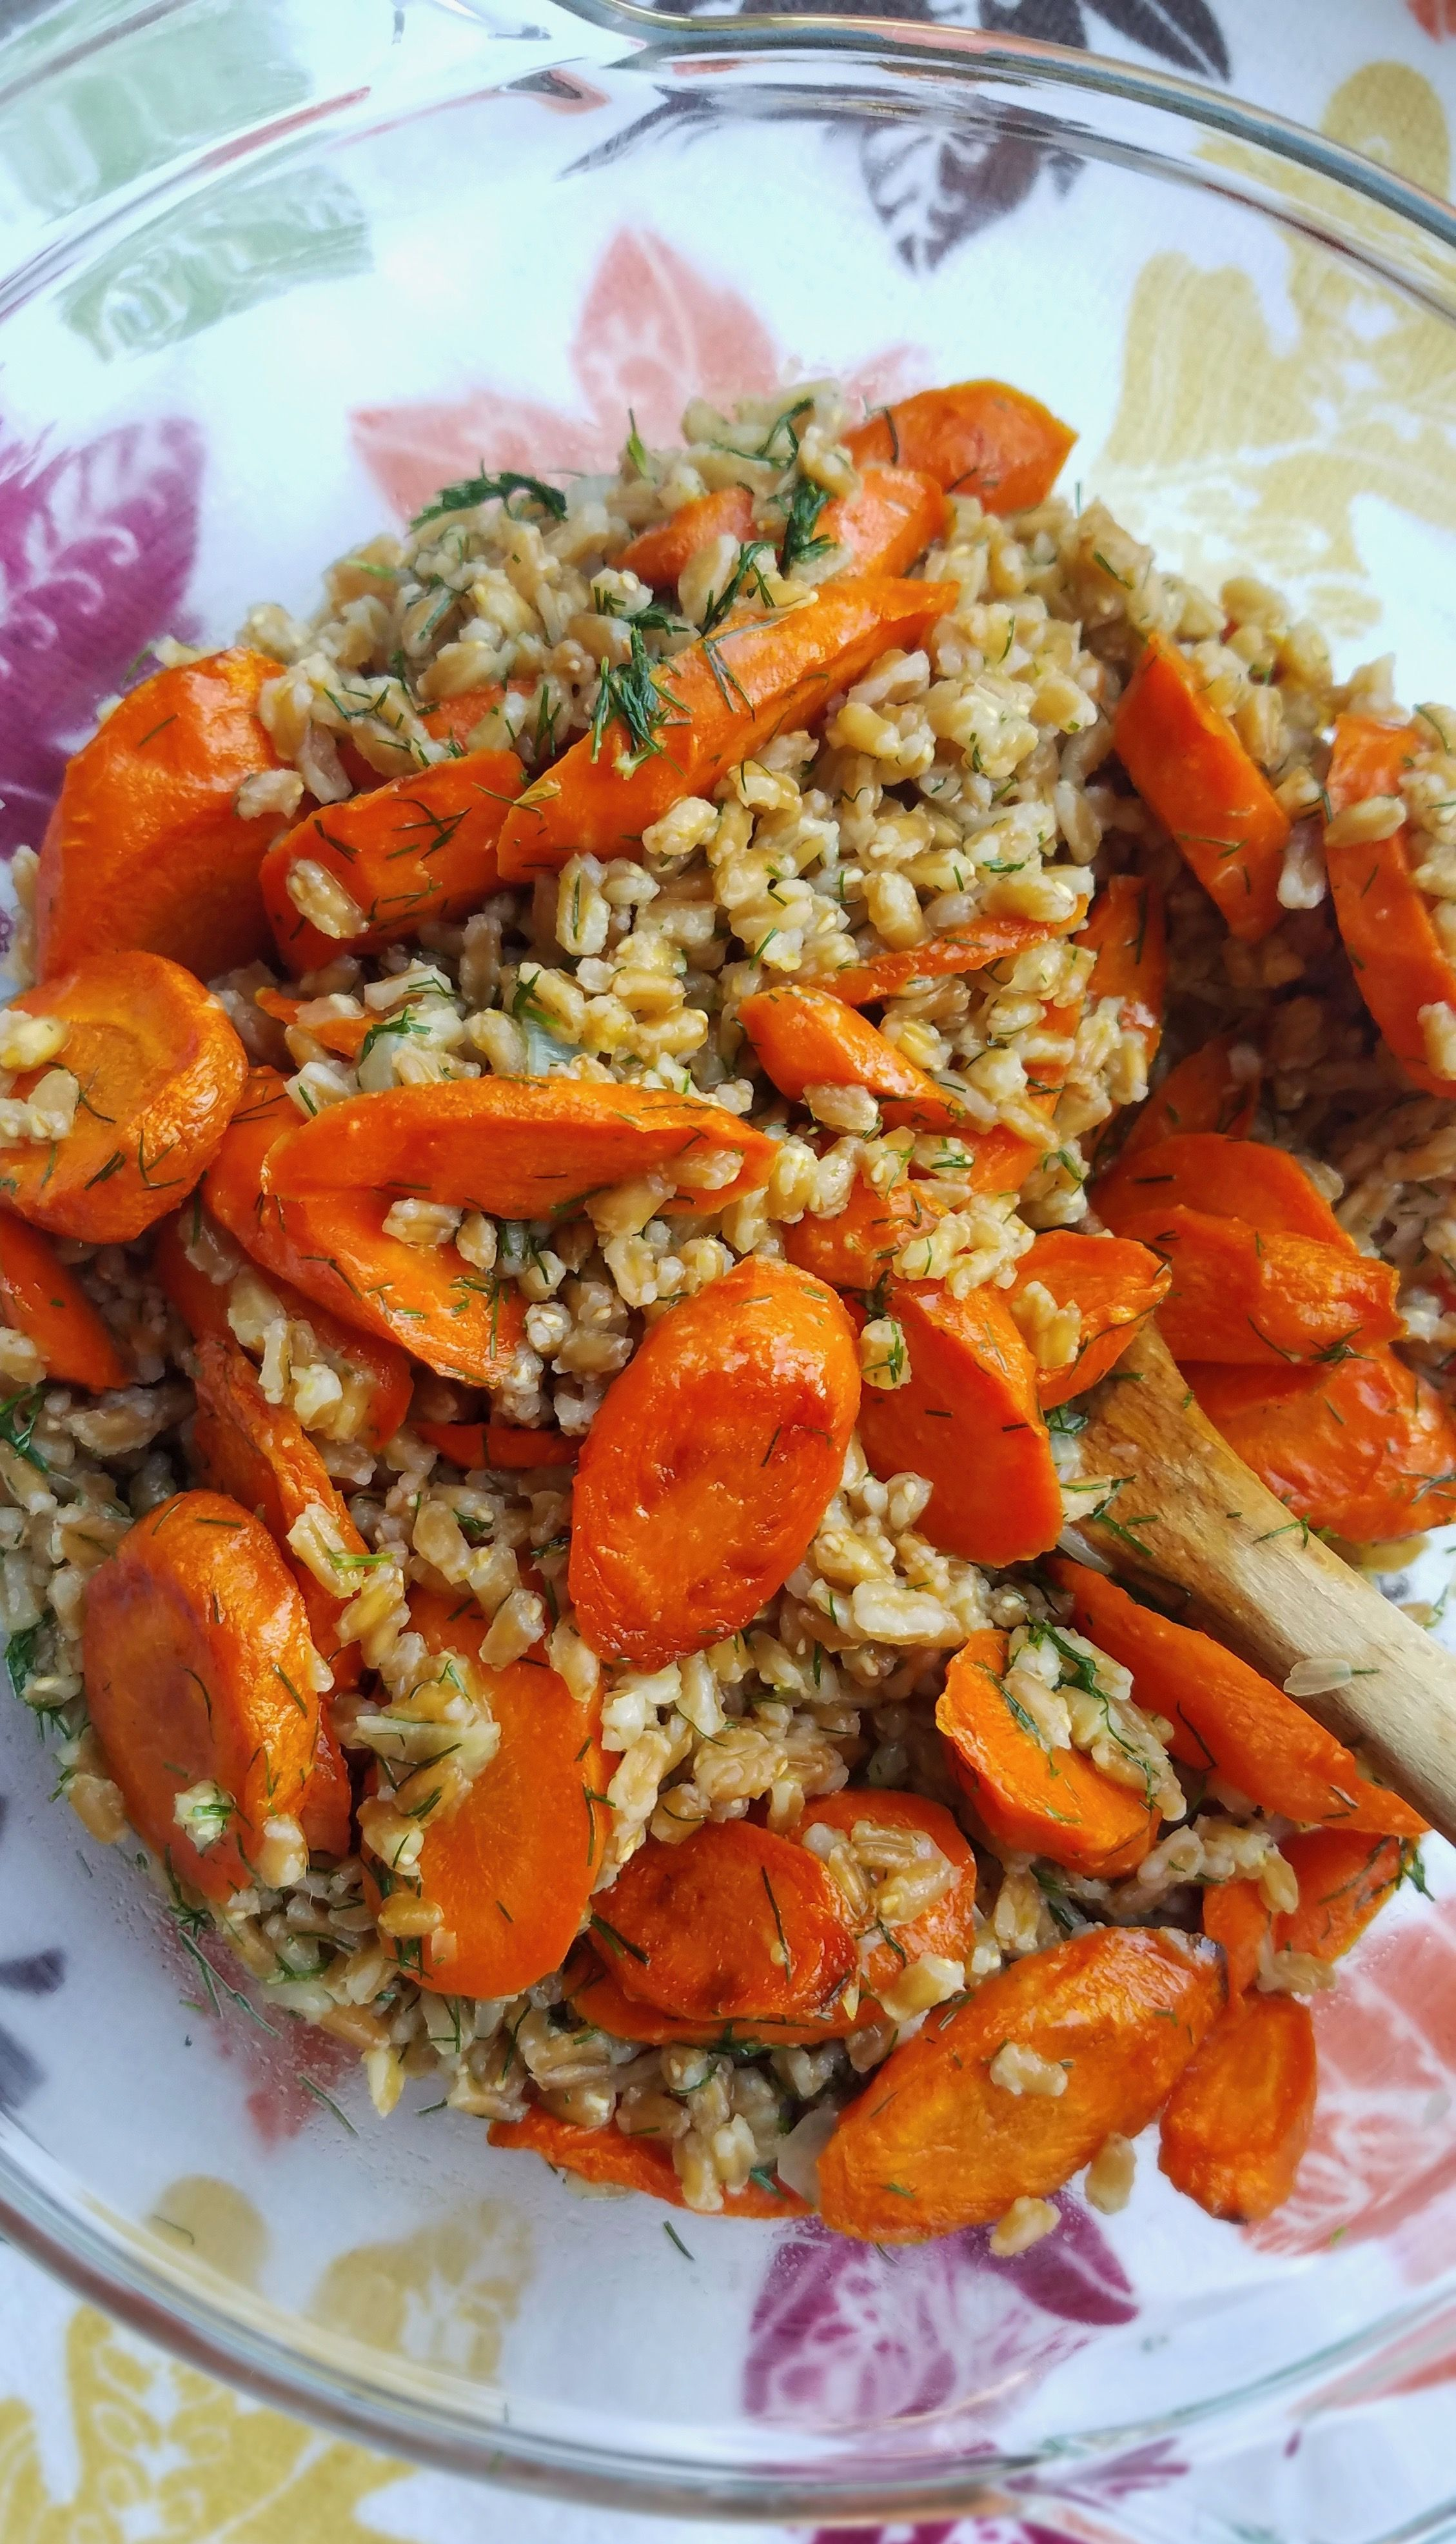 Roasted Carrots and Farro with Citrus, Ginger and Dill Roasted Carrots and Farro with Citrus, Ginger and Dill - This recipe works well as a warm side or as a cold grain salad.  A great work lunch, hearty Thanksgiving or everyday side.